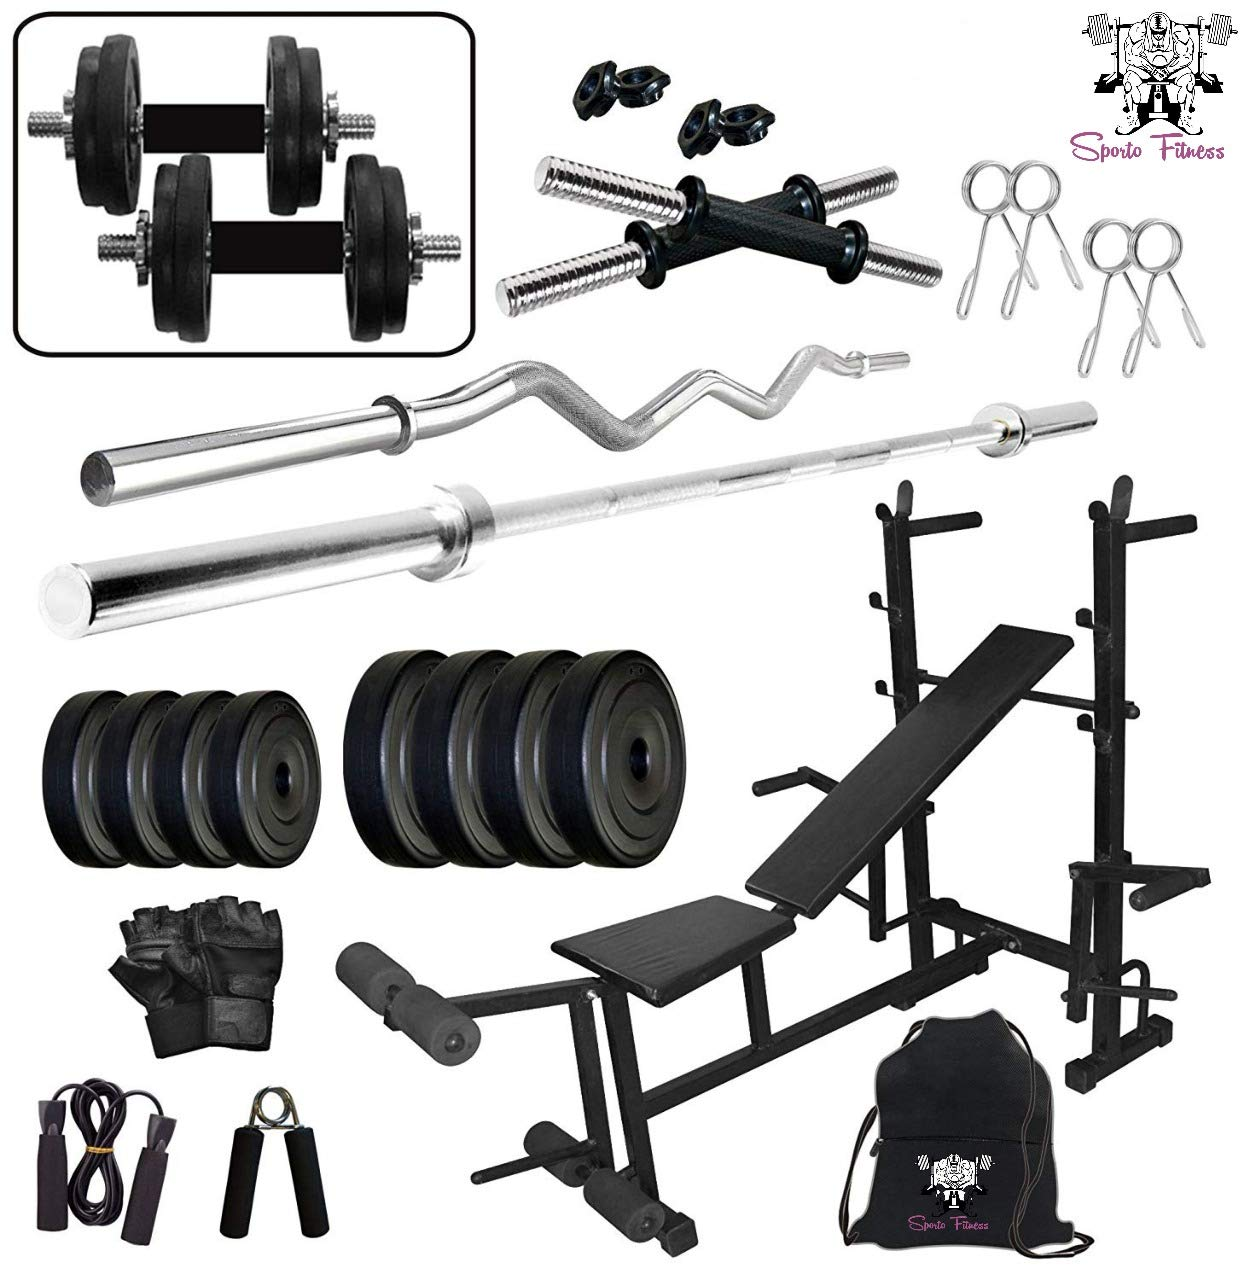 SPORTO FITNESS 80 Kg Home Gym Equipments with 8 in 1 Multi Purpose Gym  Bench : Amazon.in: Sports, Fitness & Outdoors